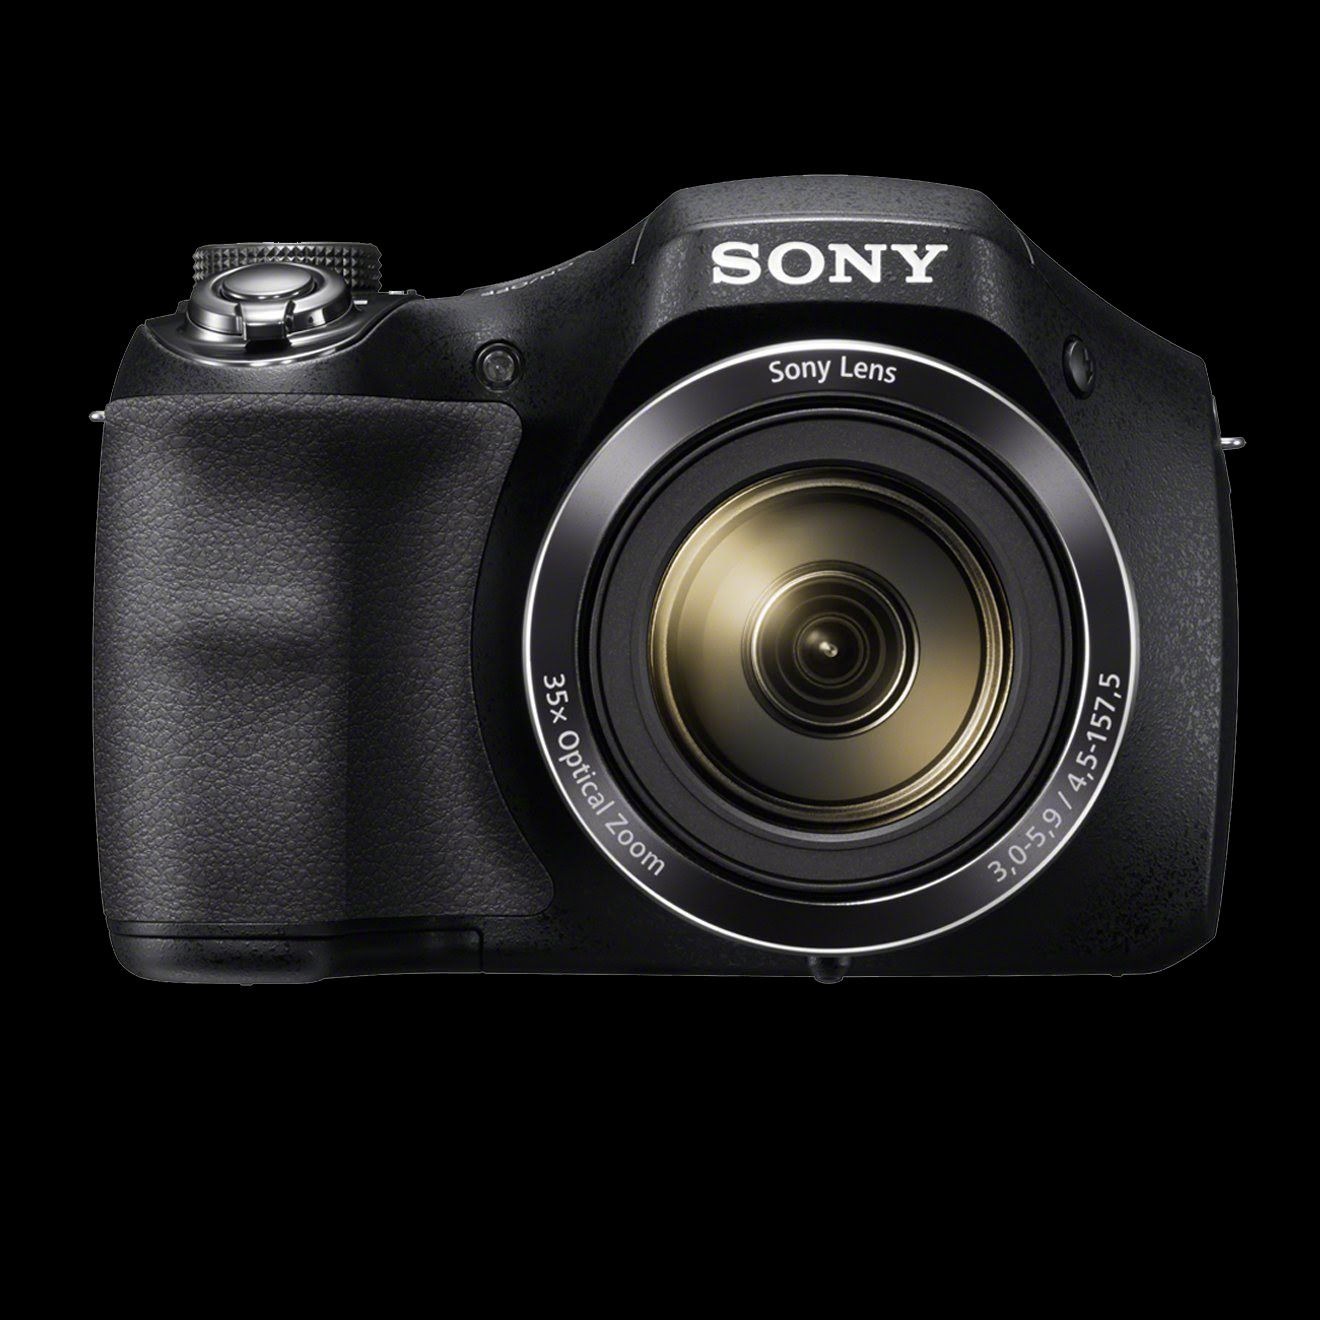 Sony H300 Digital Compact Camera